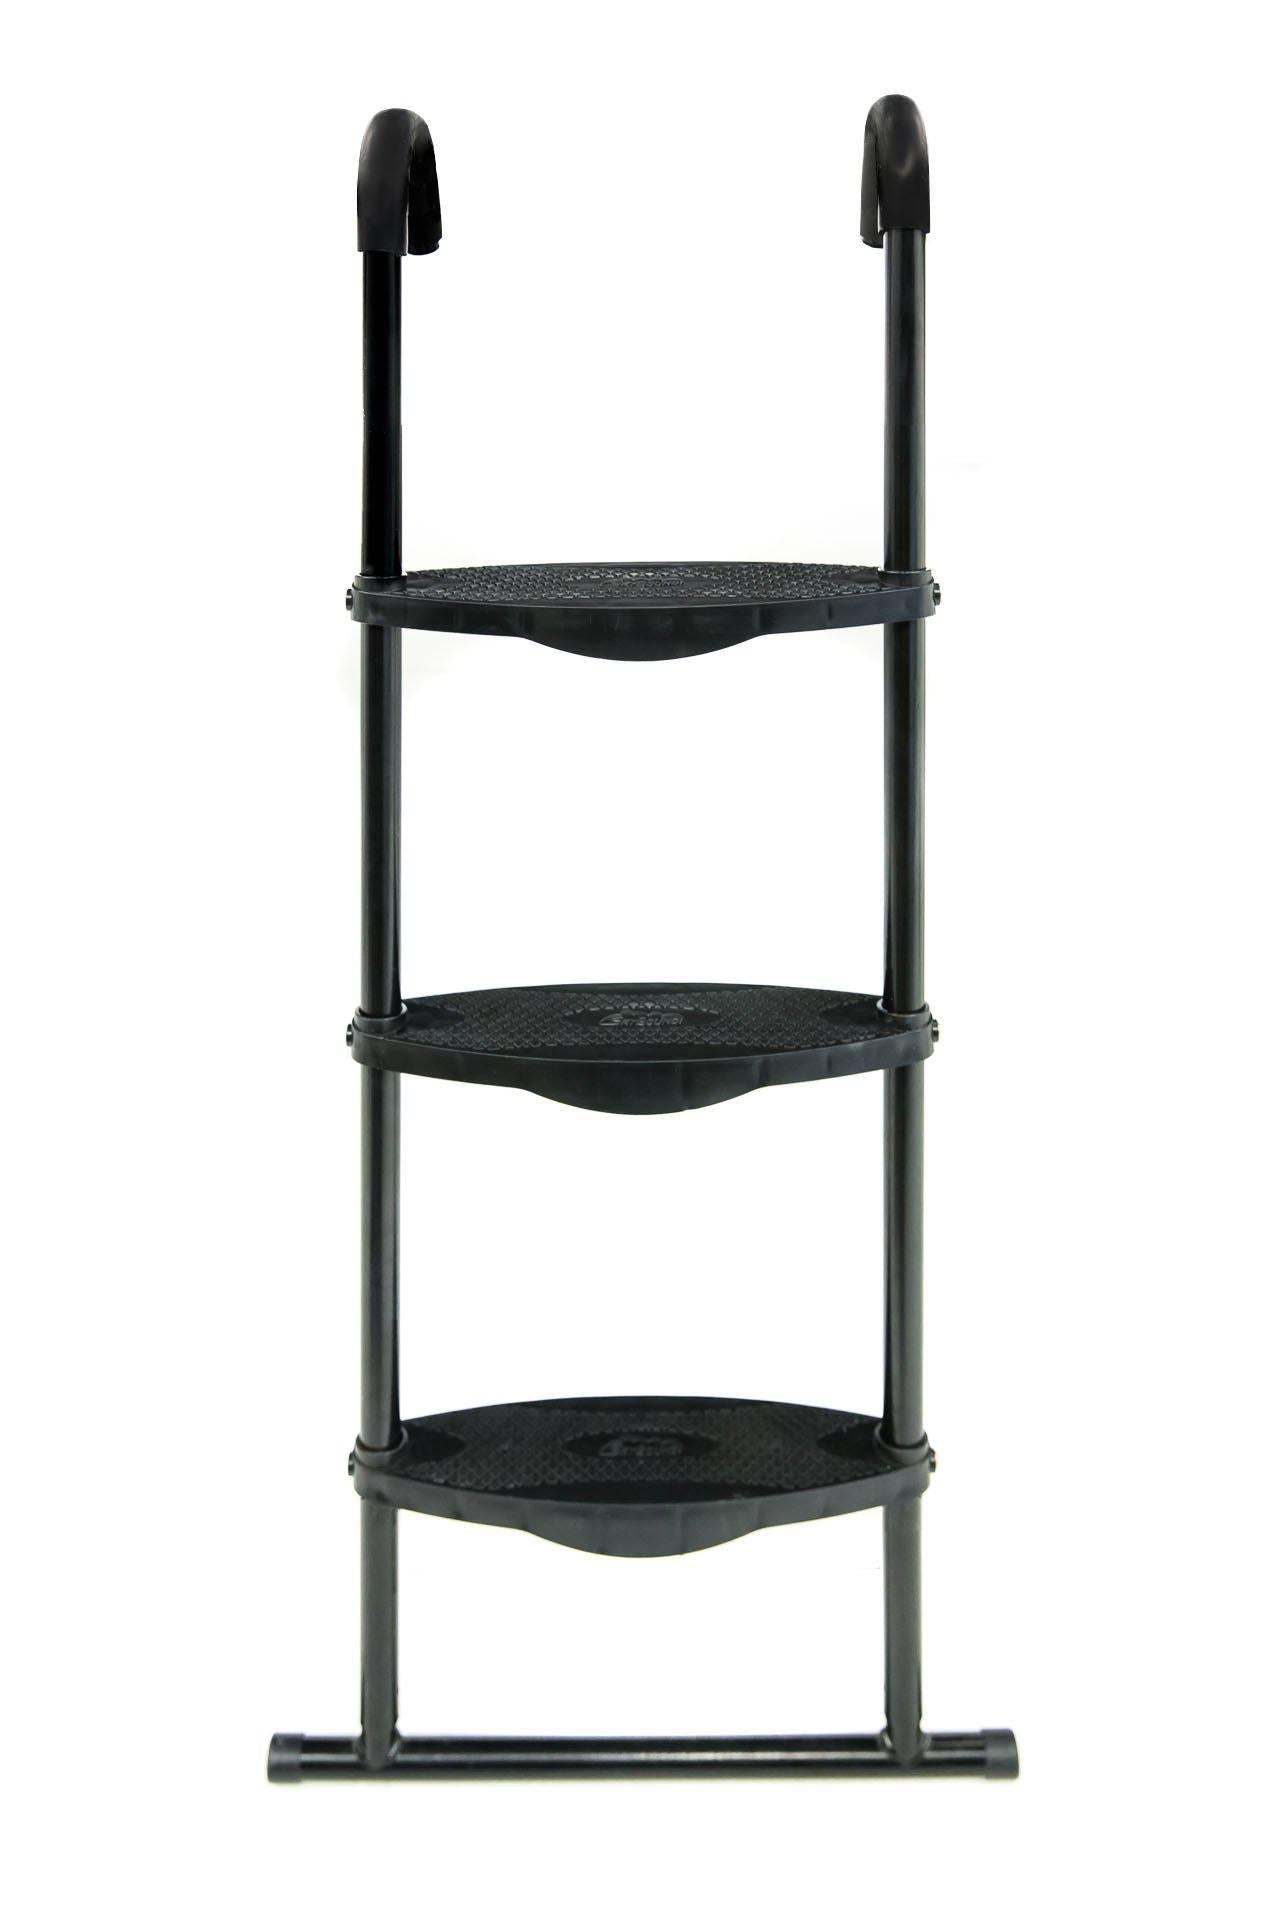 SkyBound 3-Step Adjustable Ladder